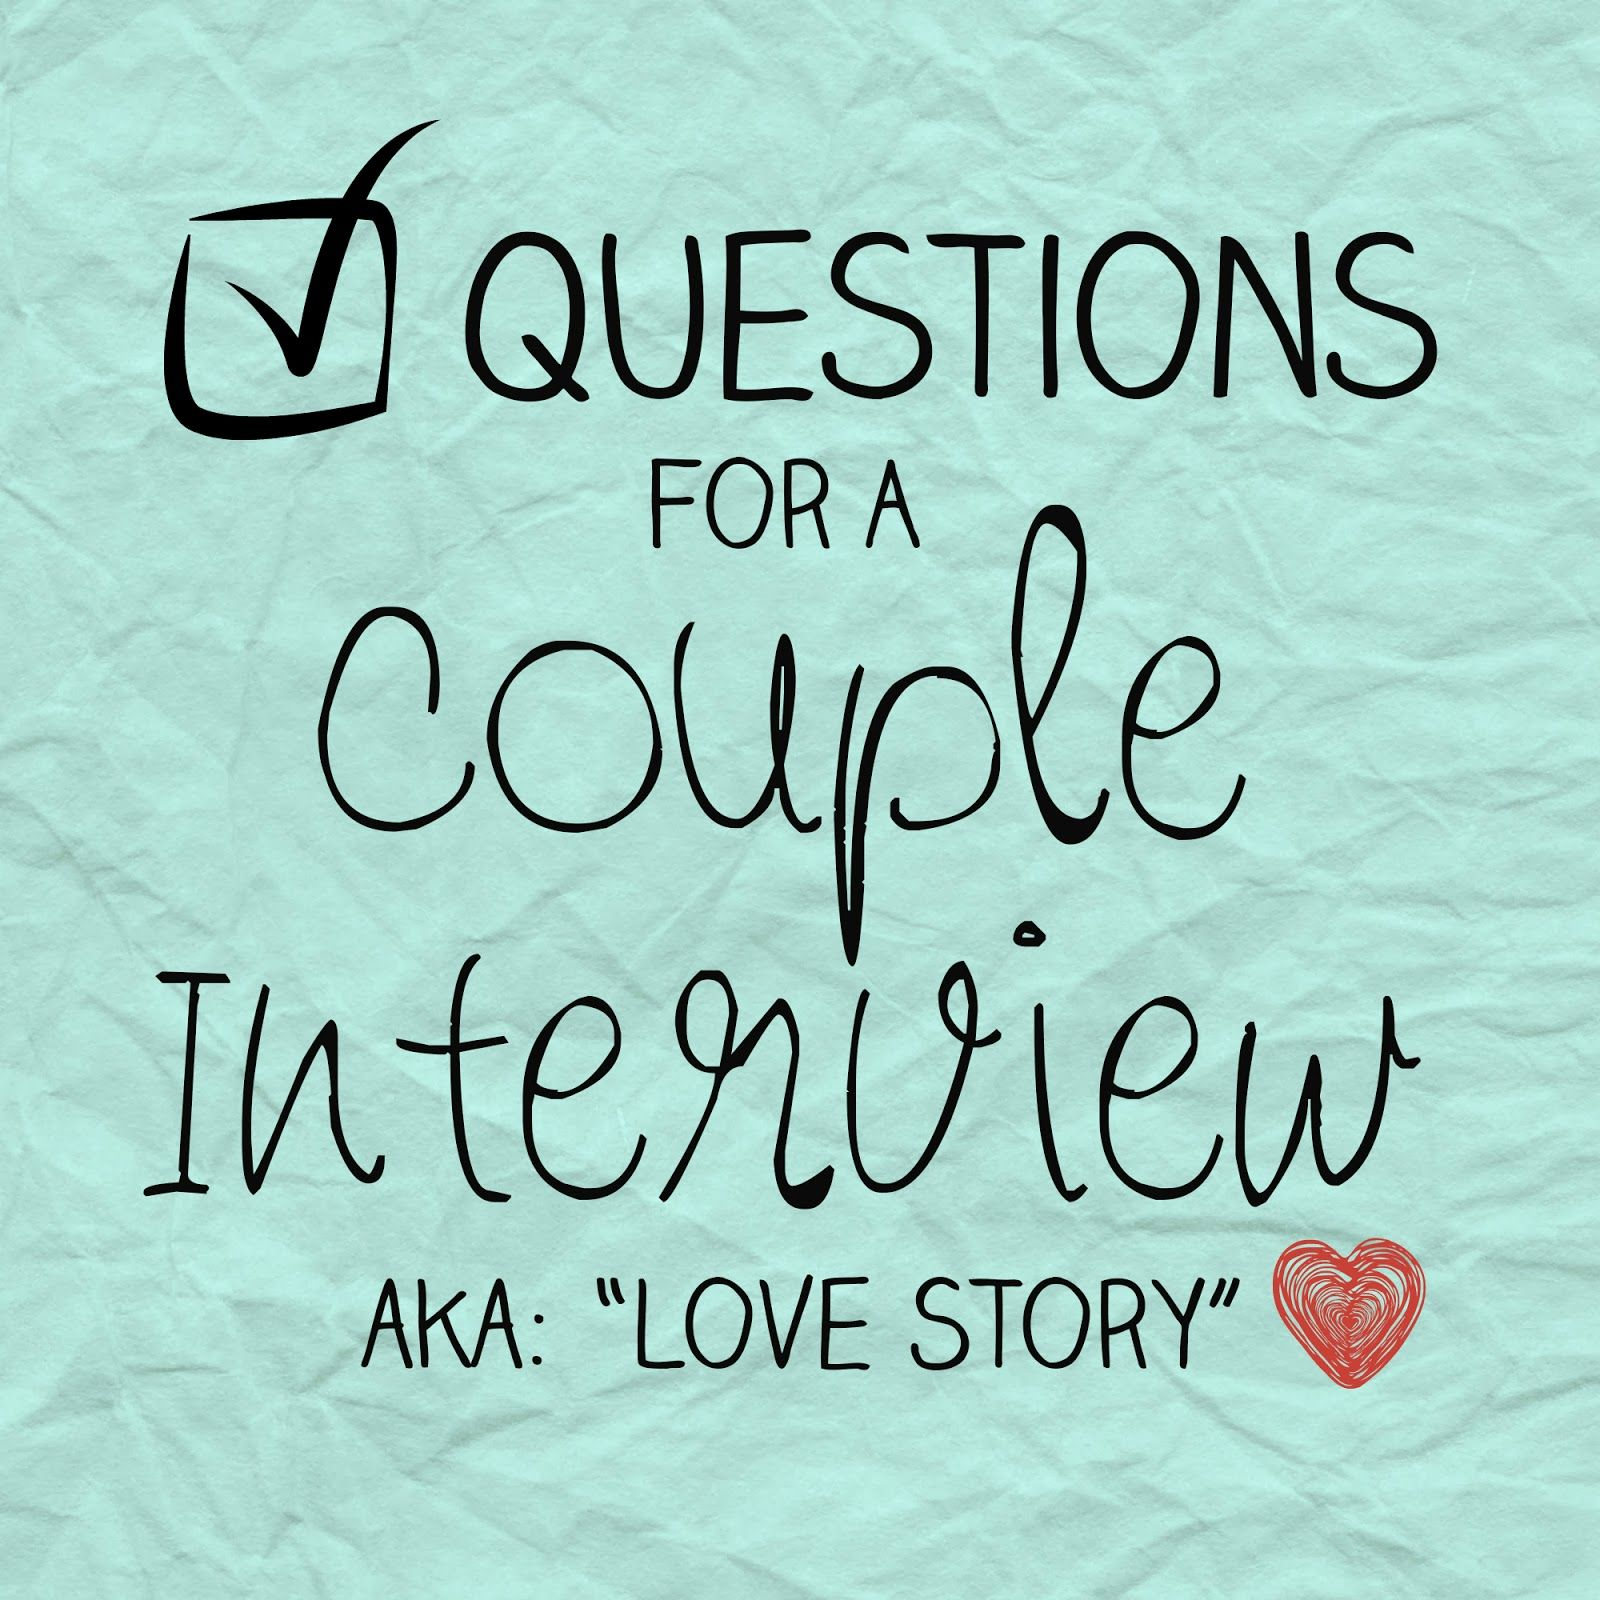 Interview Questions for a Couple This or that questions